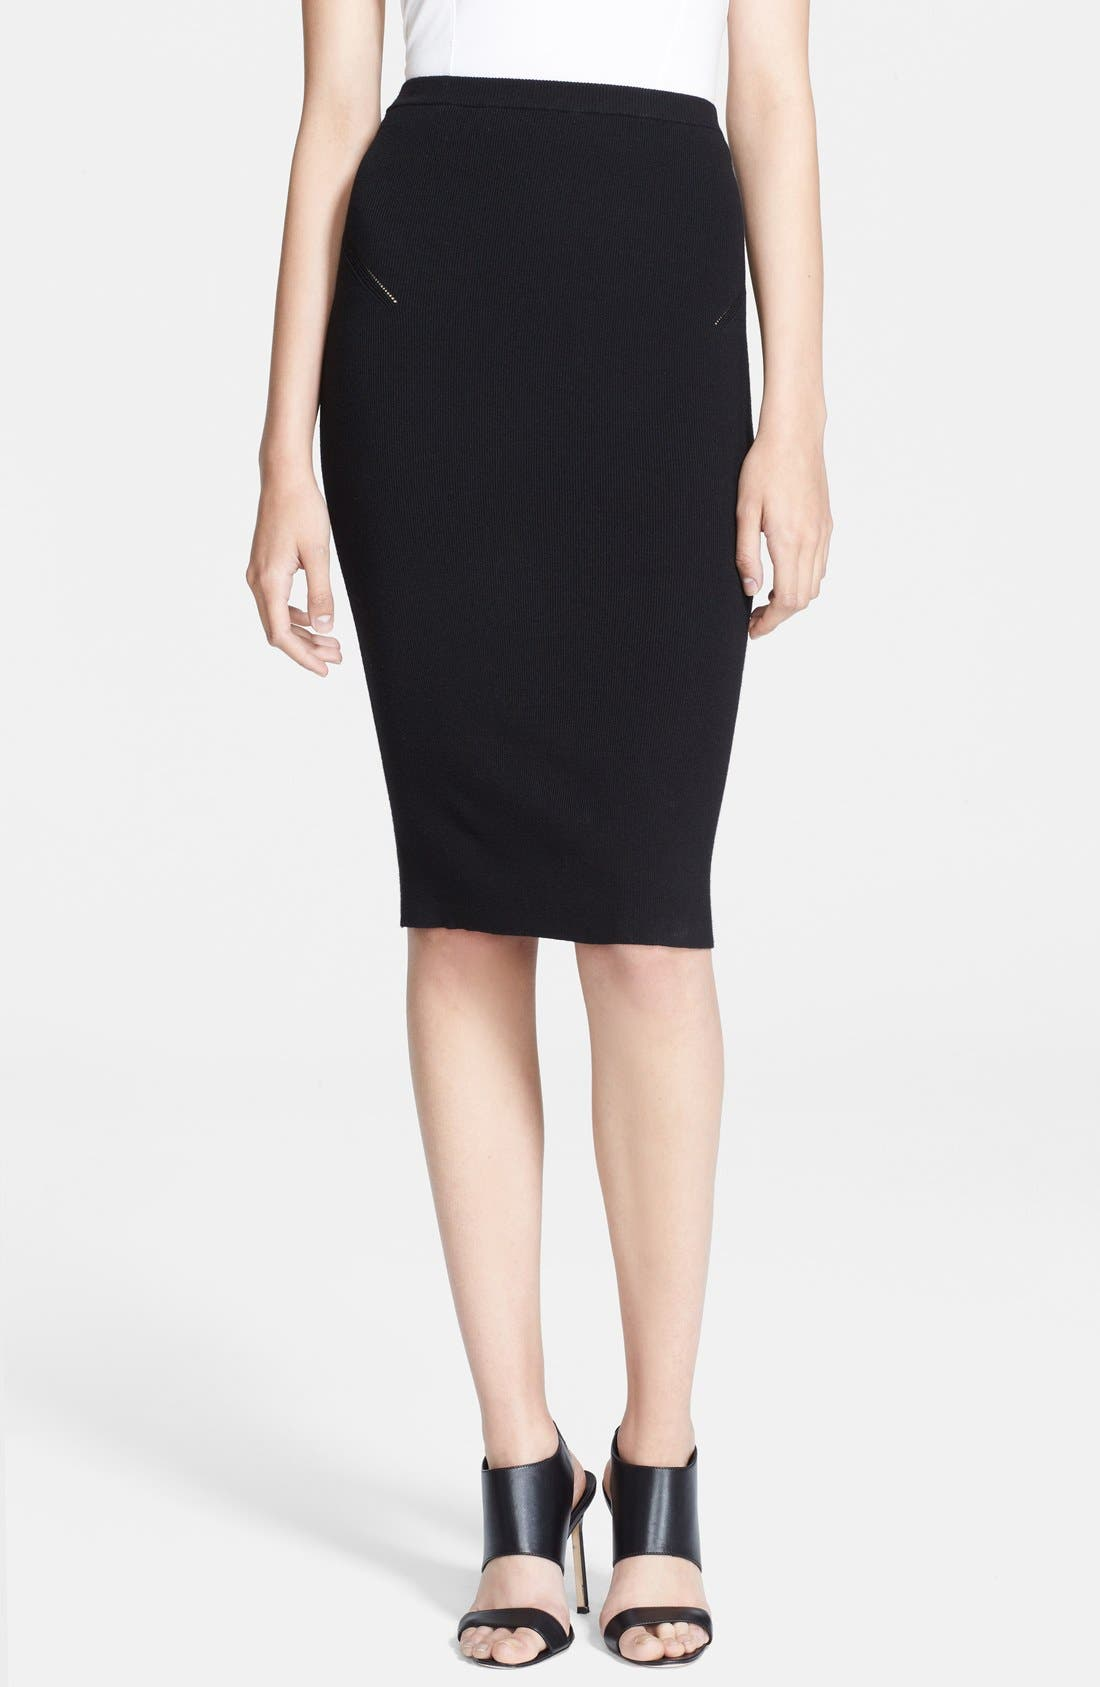 Alternate Image 1 Selected - Haute Hippie Rib Knit Pencil Skirt